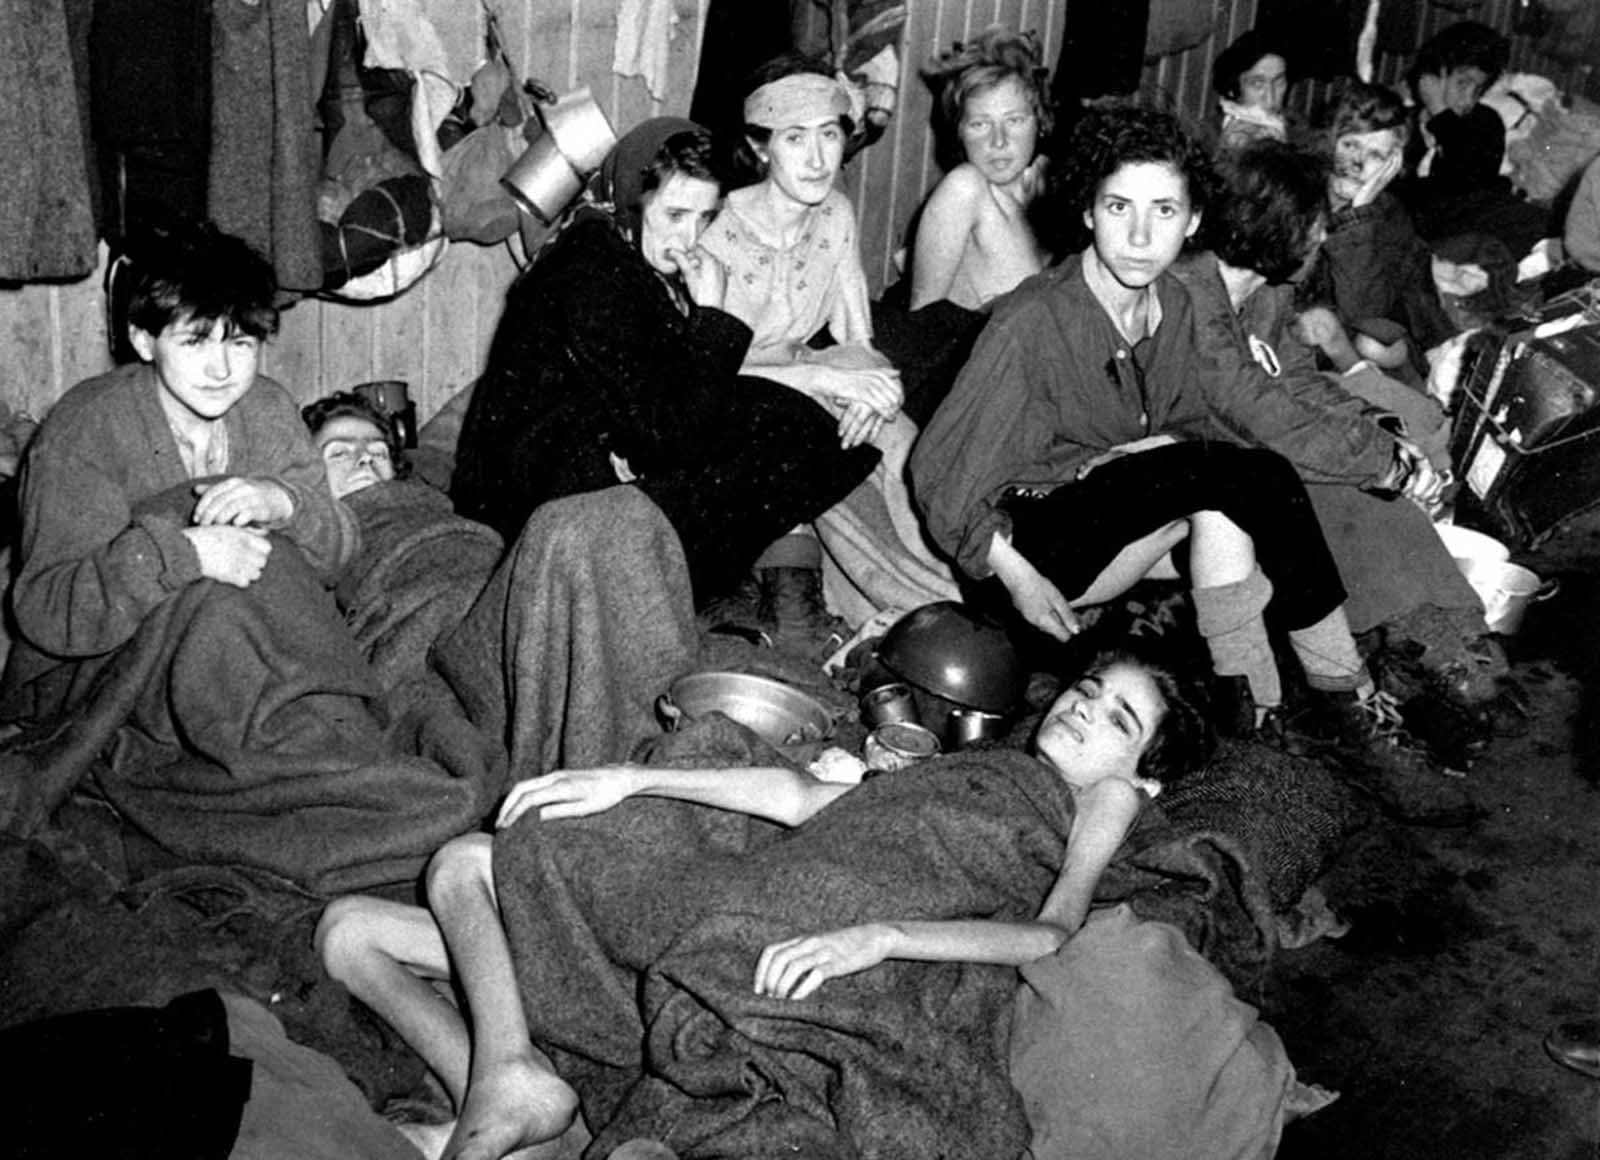 Women and children, some of over 40,000 concentration camp inmates liberated by the British, suffering from typhus, starvation and dysentery, huddle together in a barrack at Bergen-Belsen, Germany, in April 1945.